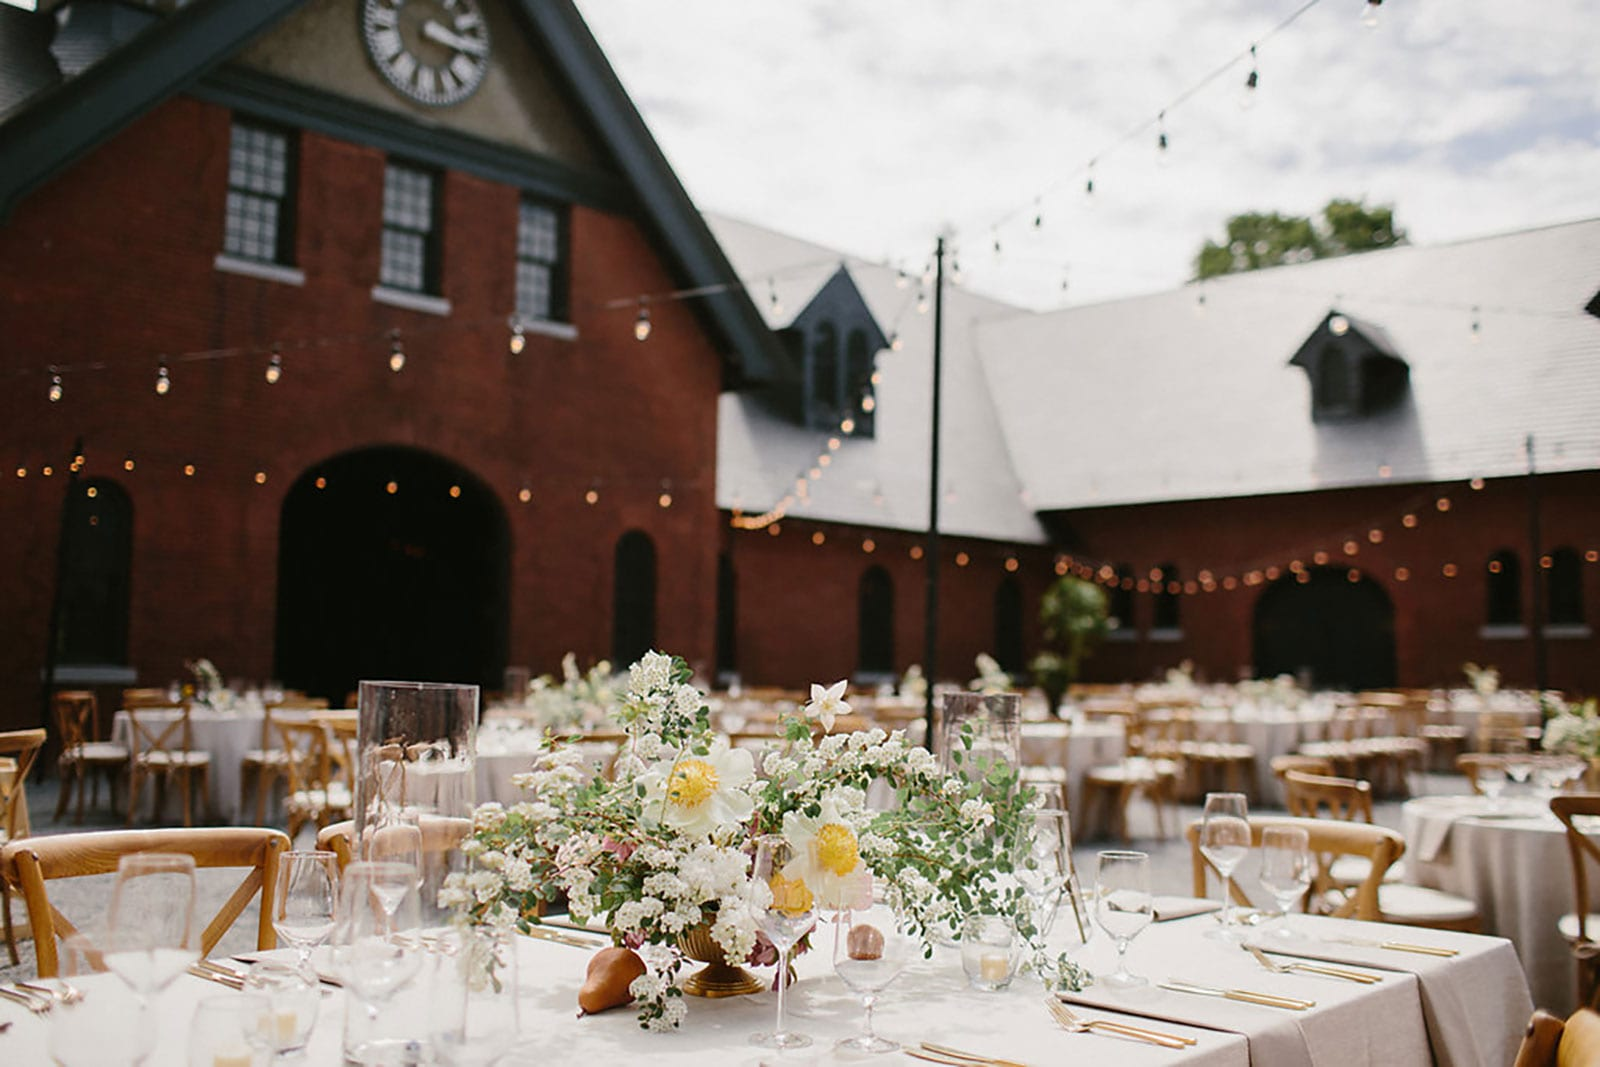 Jaclyn Watson Events • Nature Refined wedding •VT|NY|FL